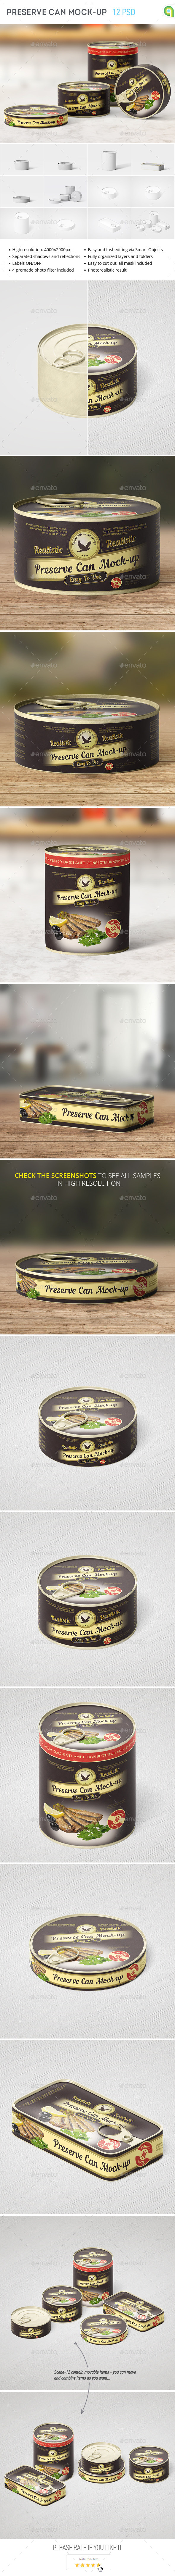 Preserve Can Mock-Up - Food and Drink Packaging